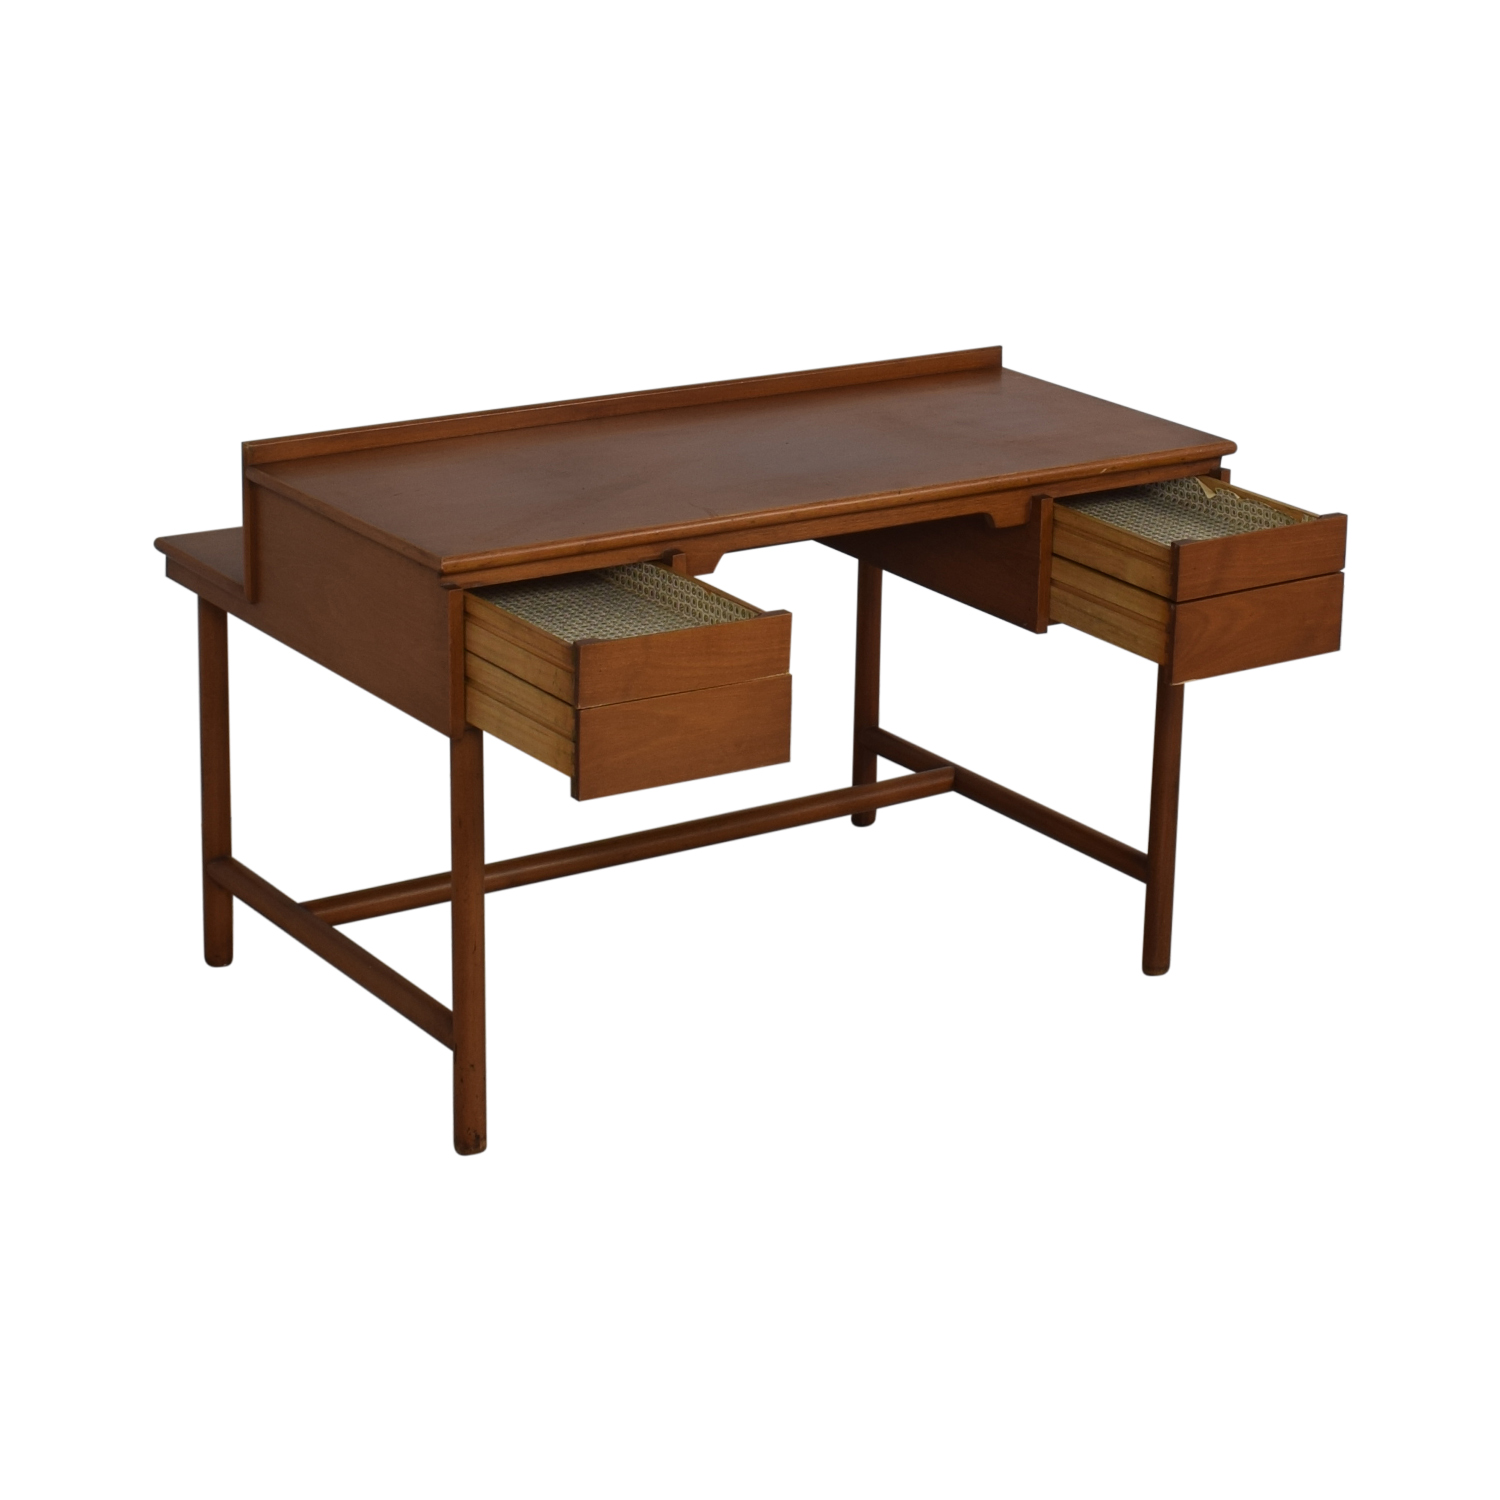 88 Off Grand Rapids Bookcase And Chair Co Mid Century Walnut Desk Tables